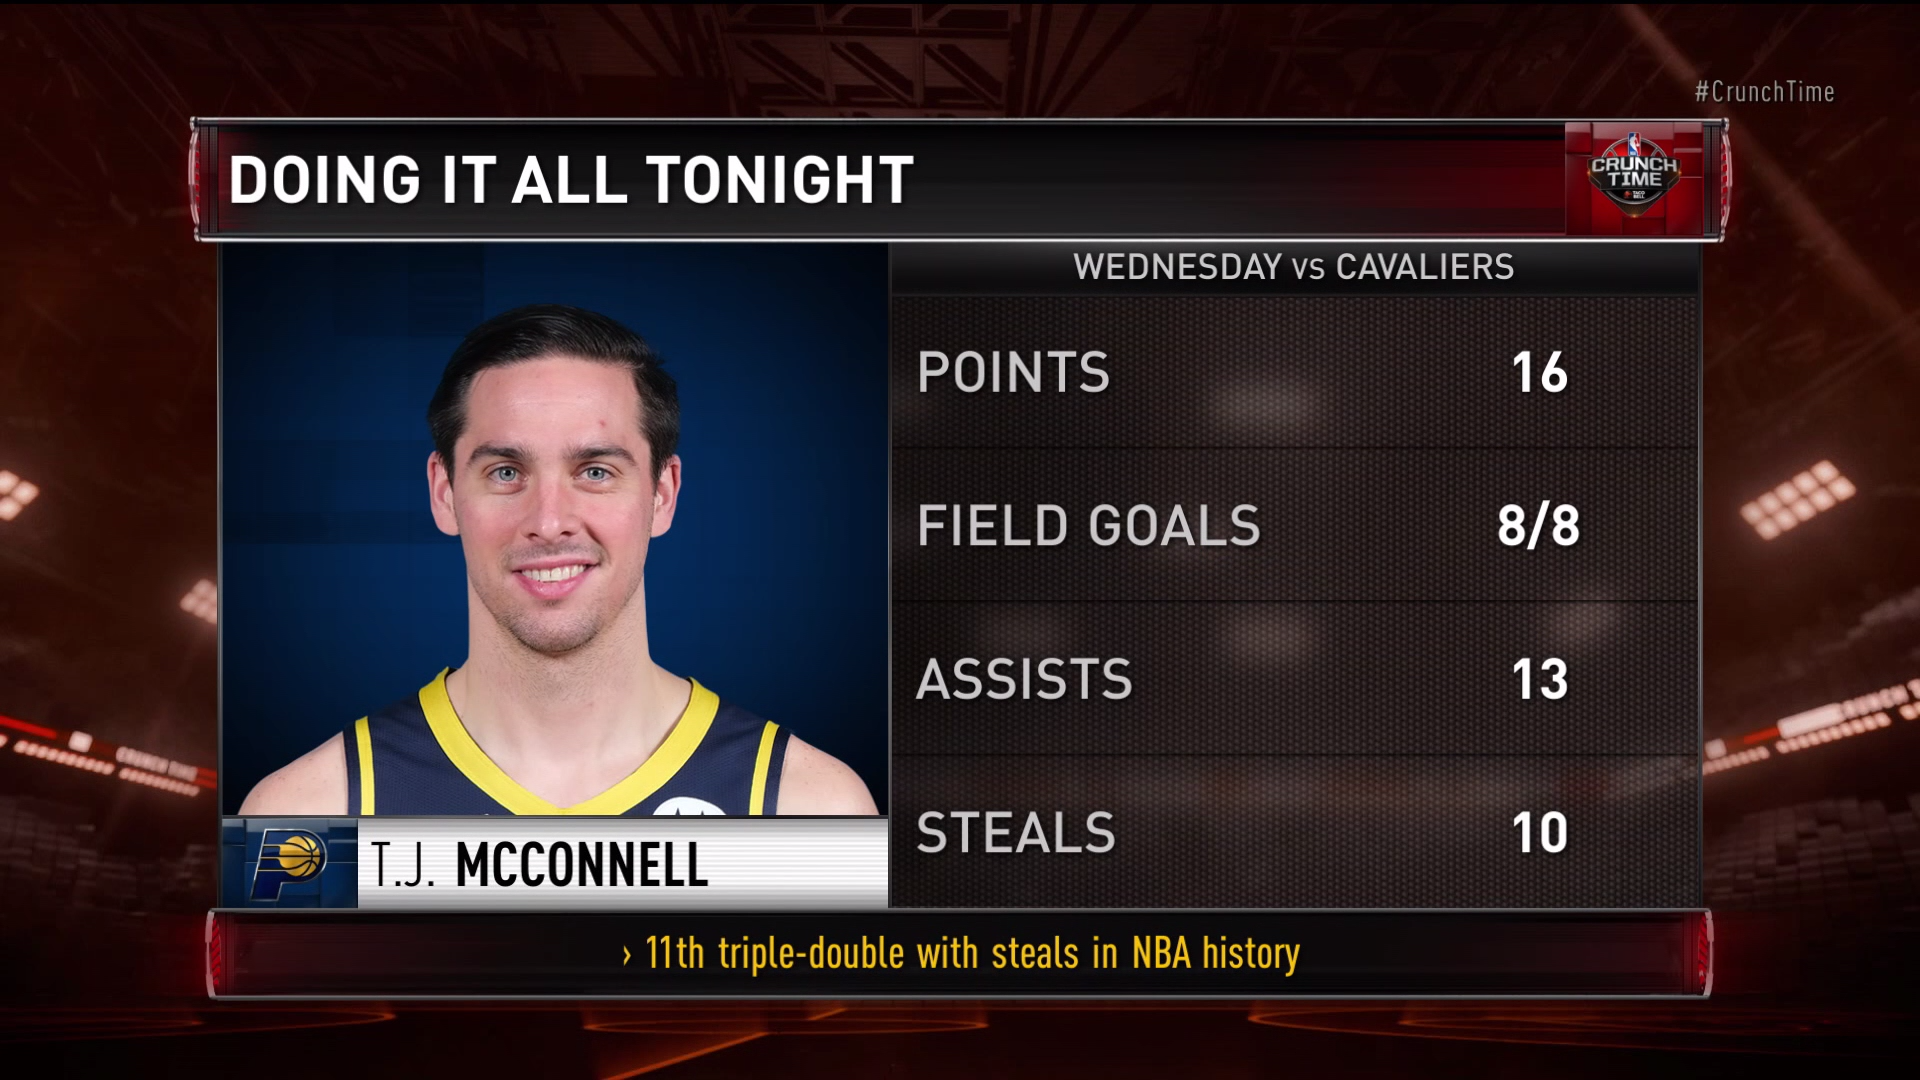 T.J. McConnell's triple-double with 10 steals makes history